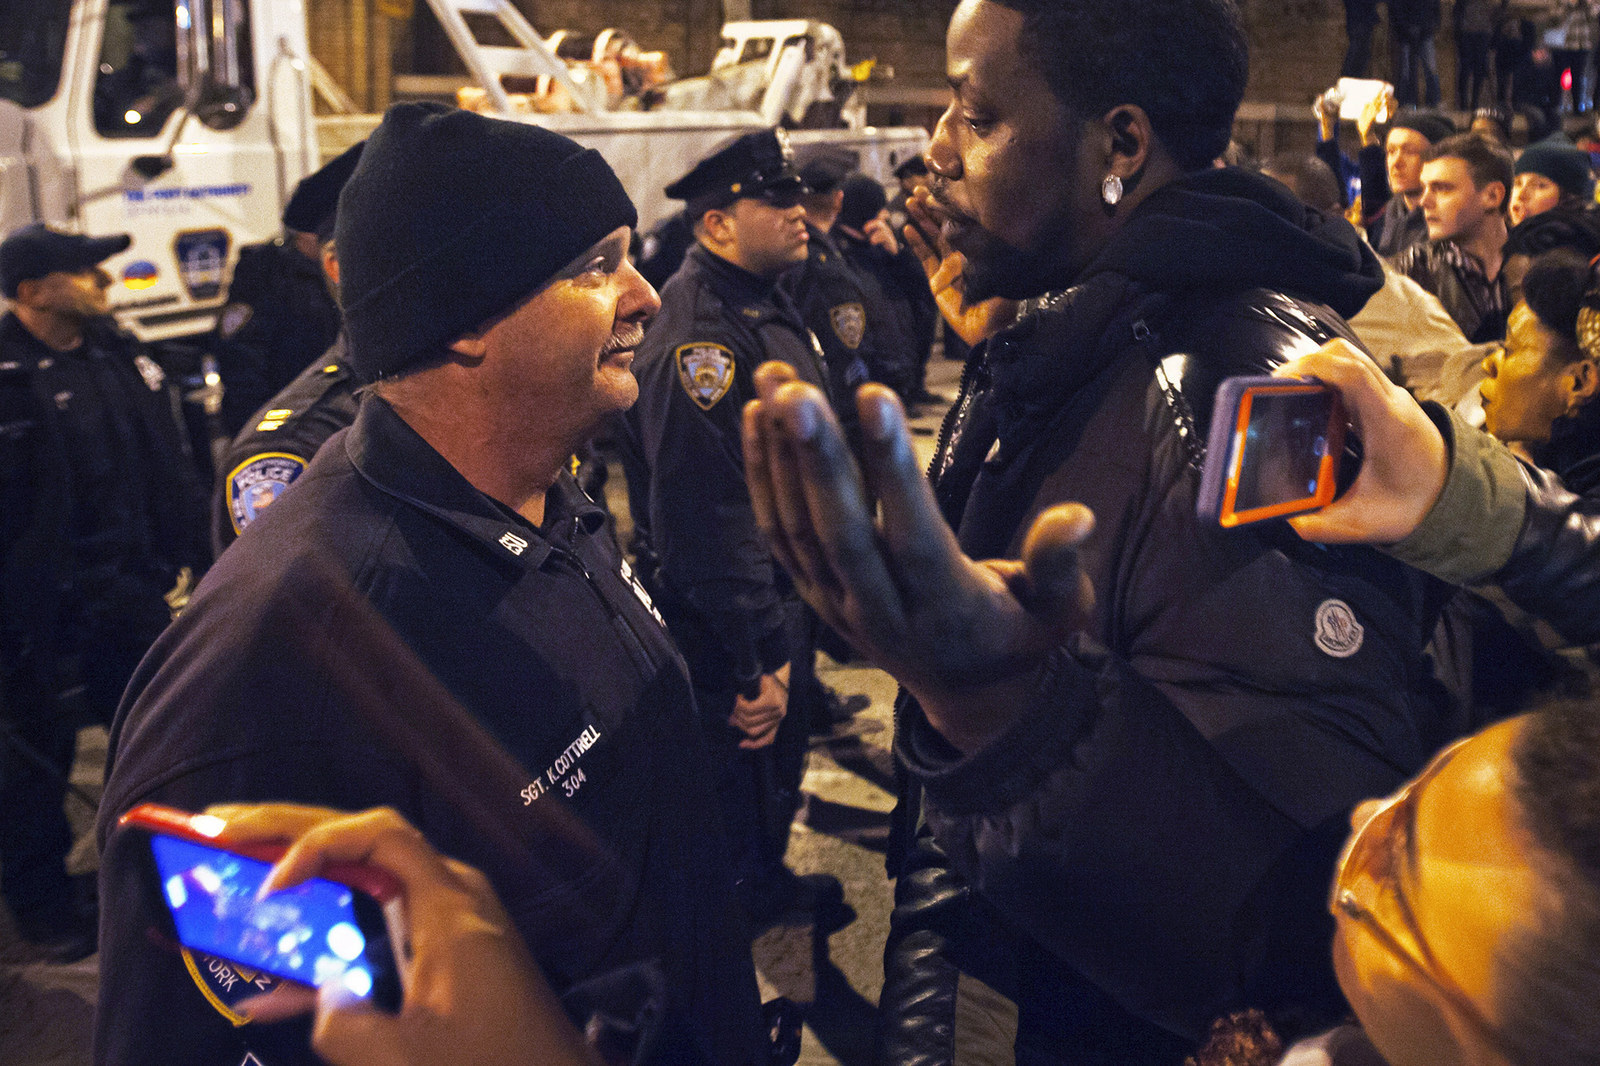 People protesting in New York argue with police